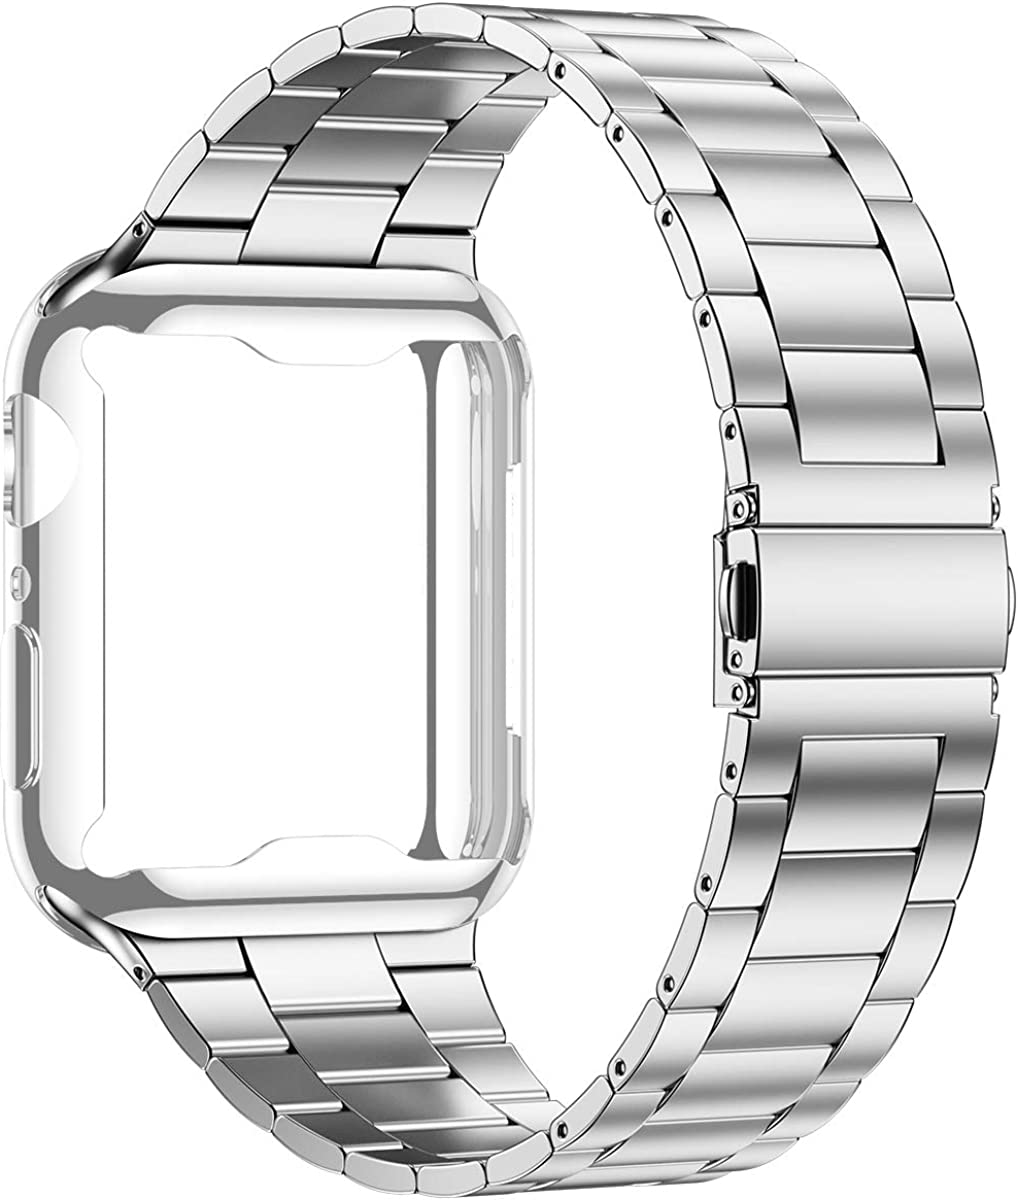 Wolait Compatible with Apple Watch Band 42mm 44mm 38mm 40mm with Case, Upgraded Business Stainless Steel Band with Screen Protector Cover for iWatch Series 6/SE Series 5/4/3/2/1